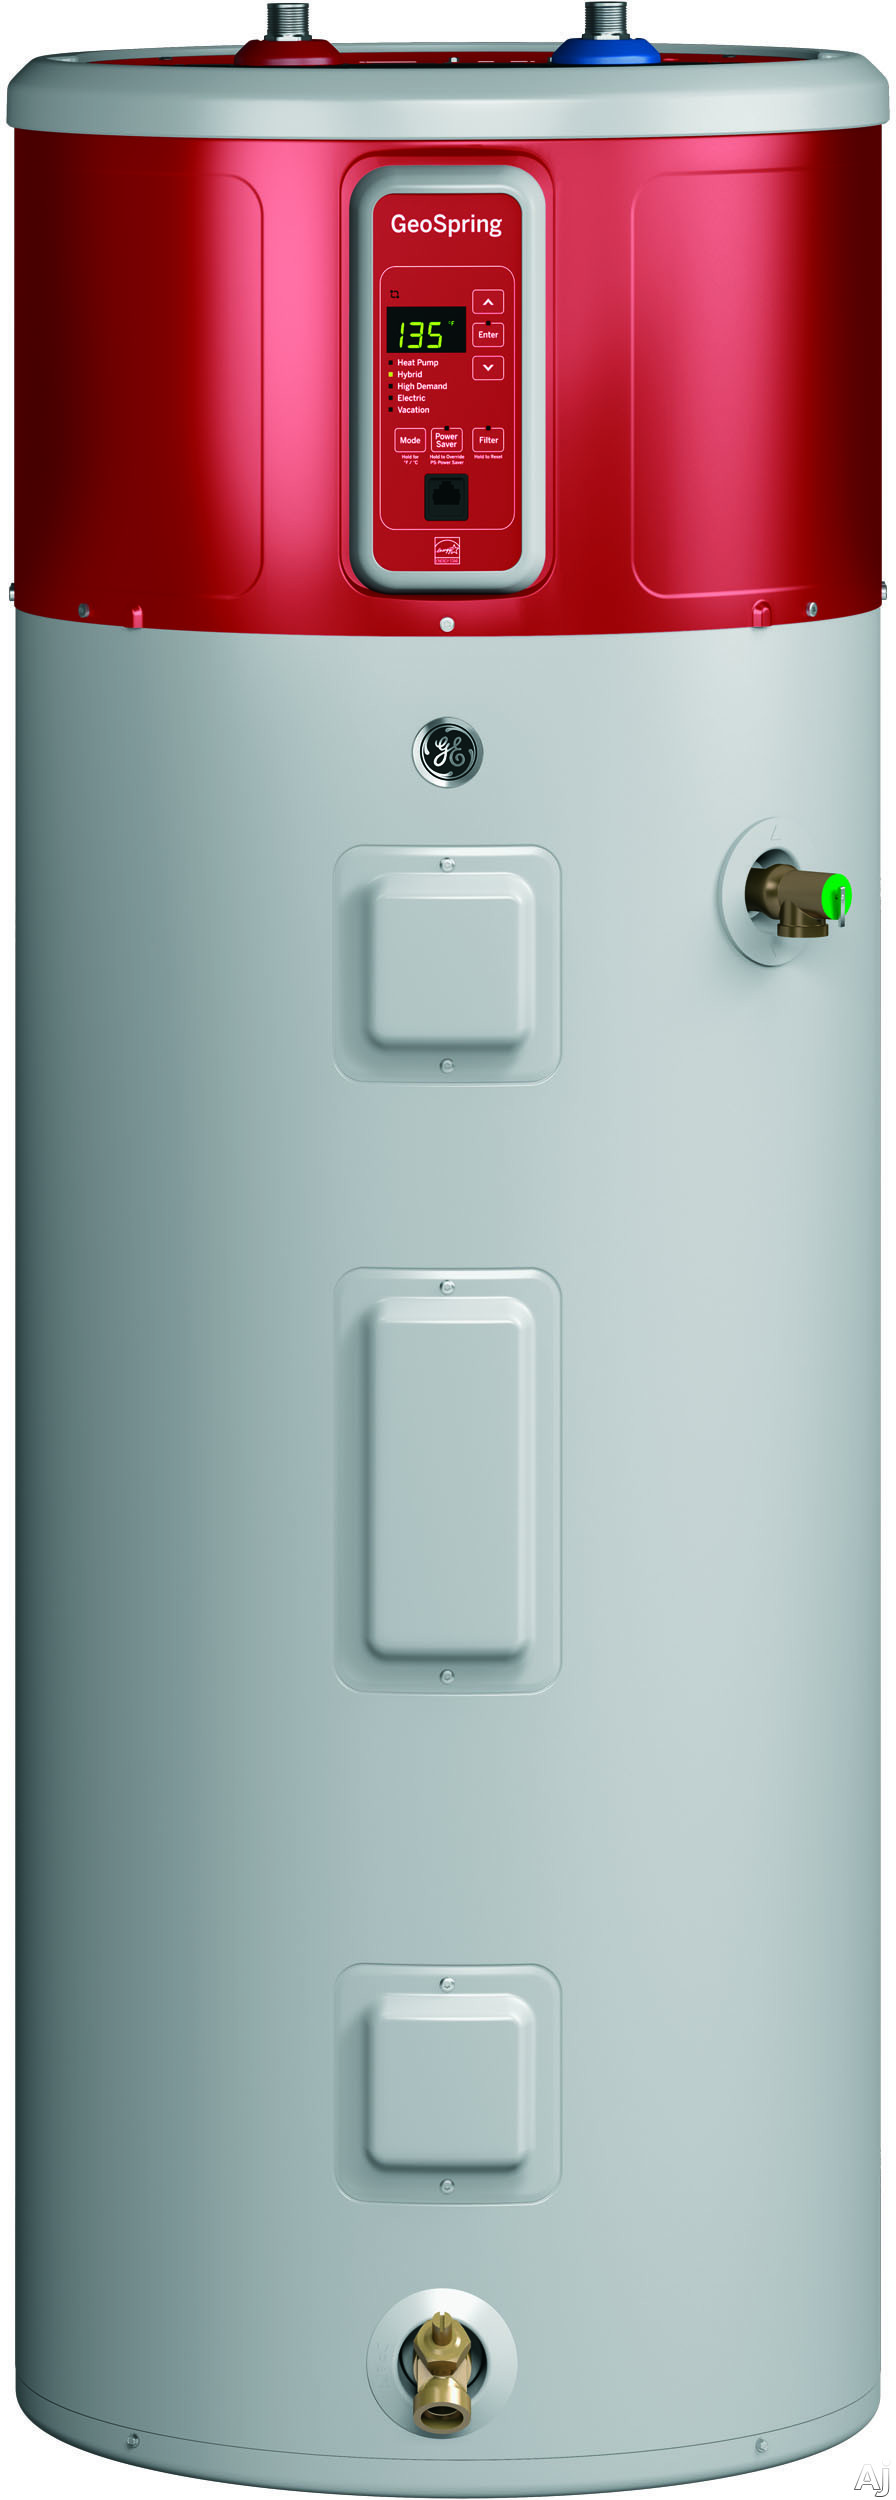 GE GeoSpring GEH80DFEJSR 25 Inch Hybrid Electric Water Heater with 80-Gallon Capacity, Energy Star Qualification, Vacation Setting and Exterior Heat Pump Technology